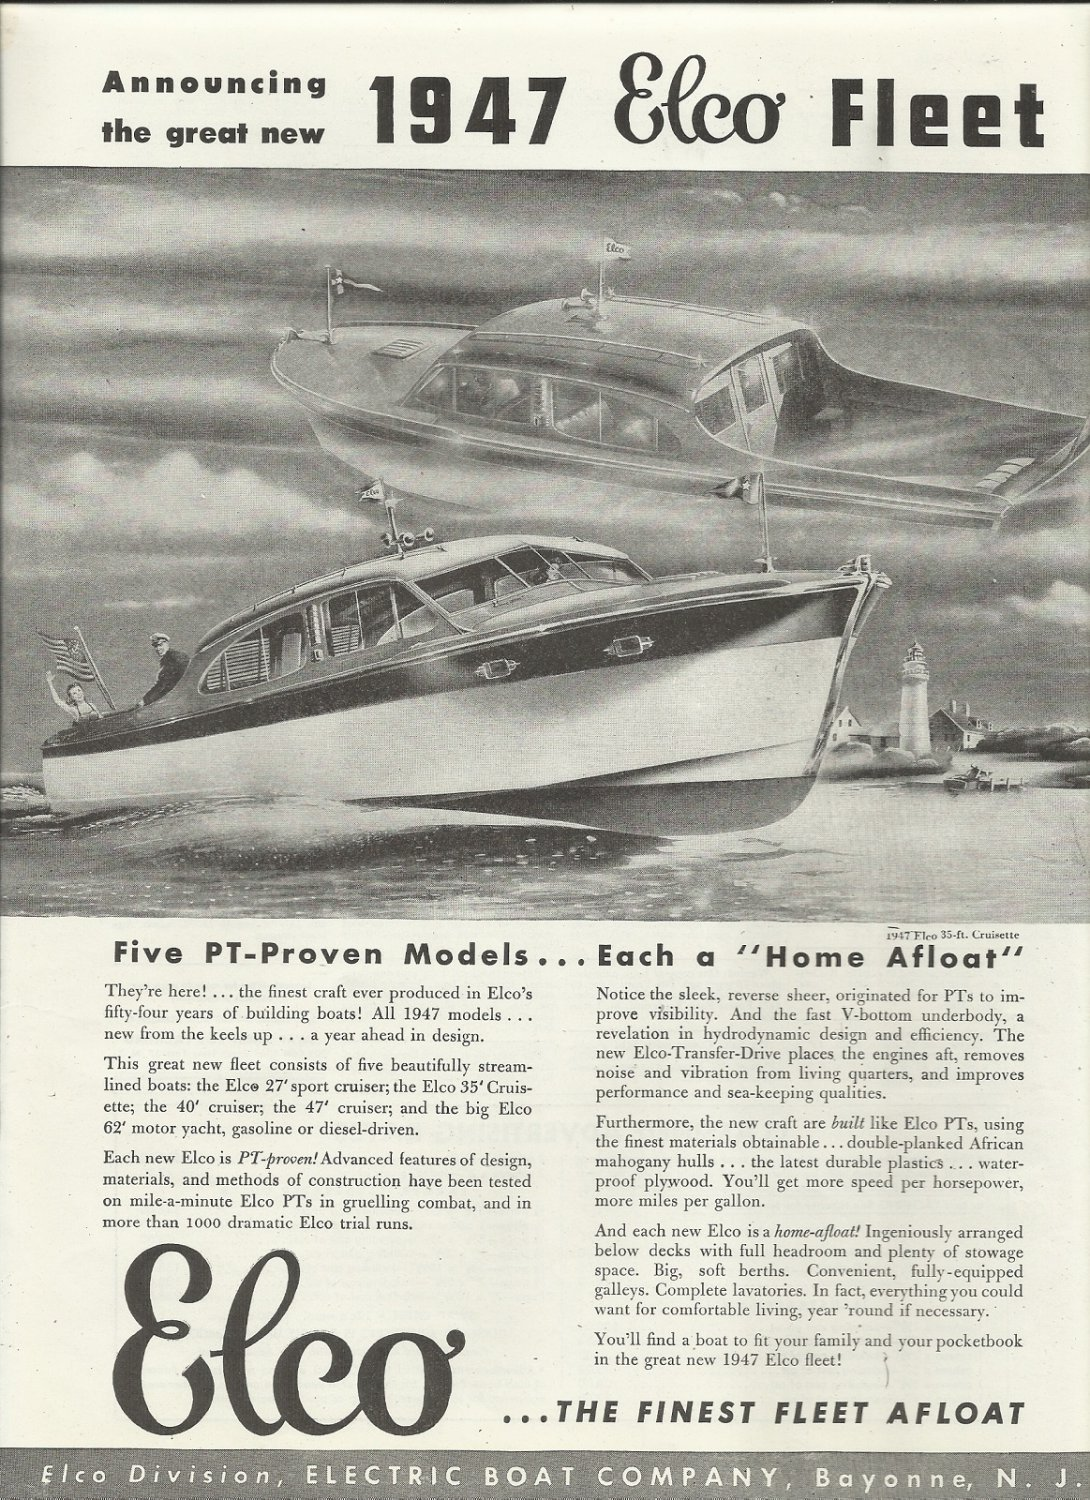 1947 Electric Boat Company Ad- The Elco 35' Cruisette